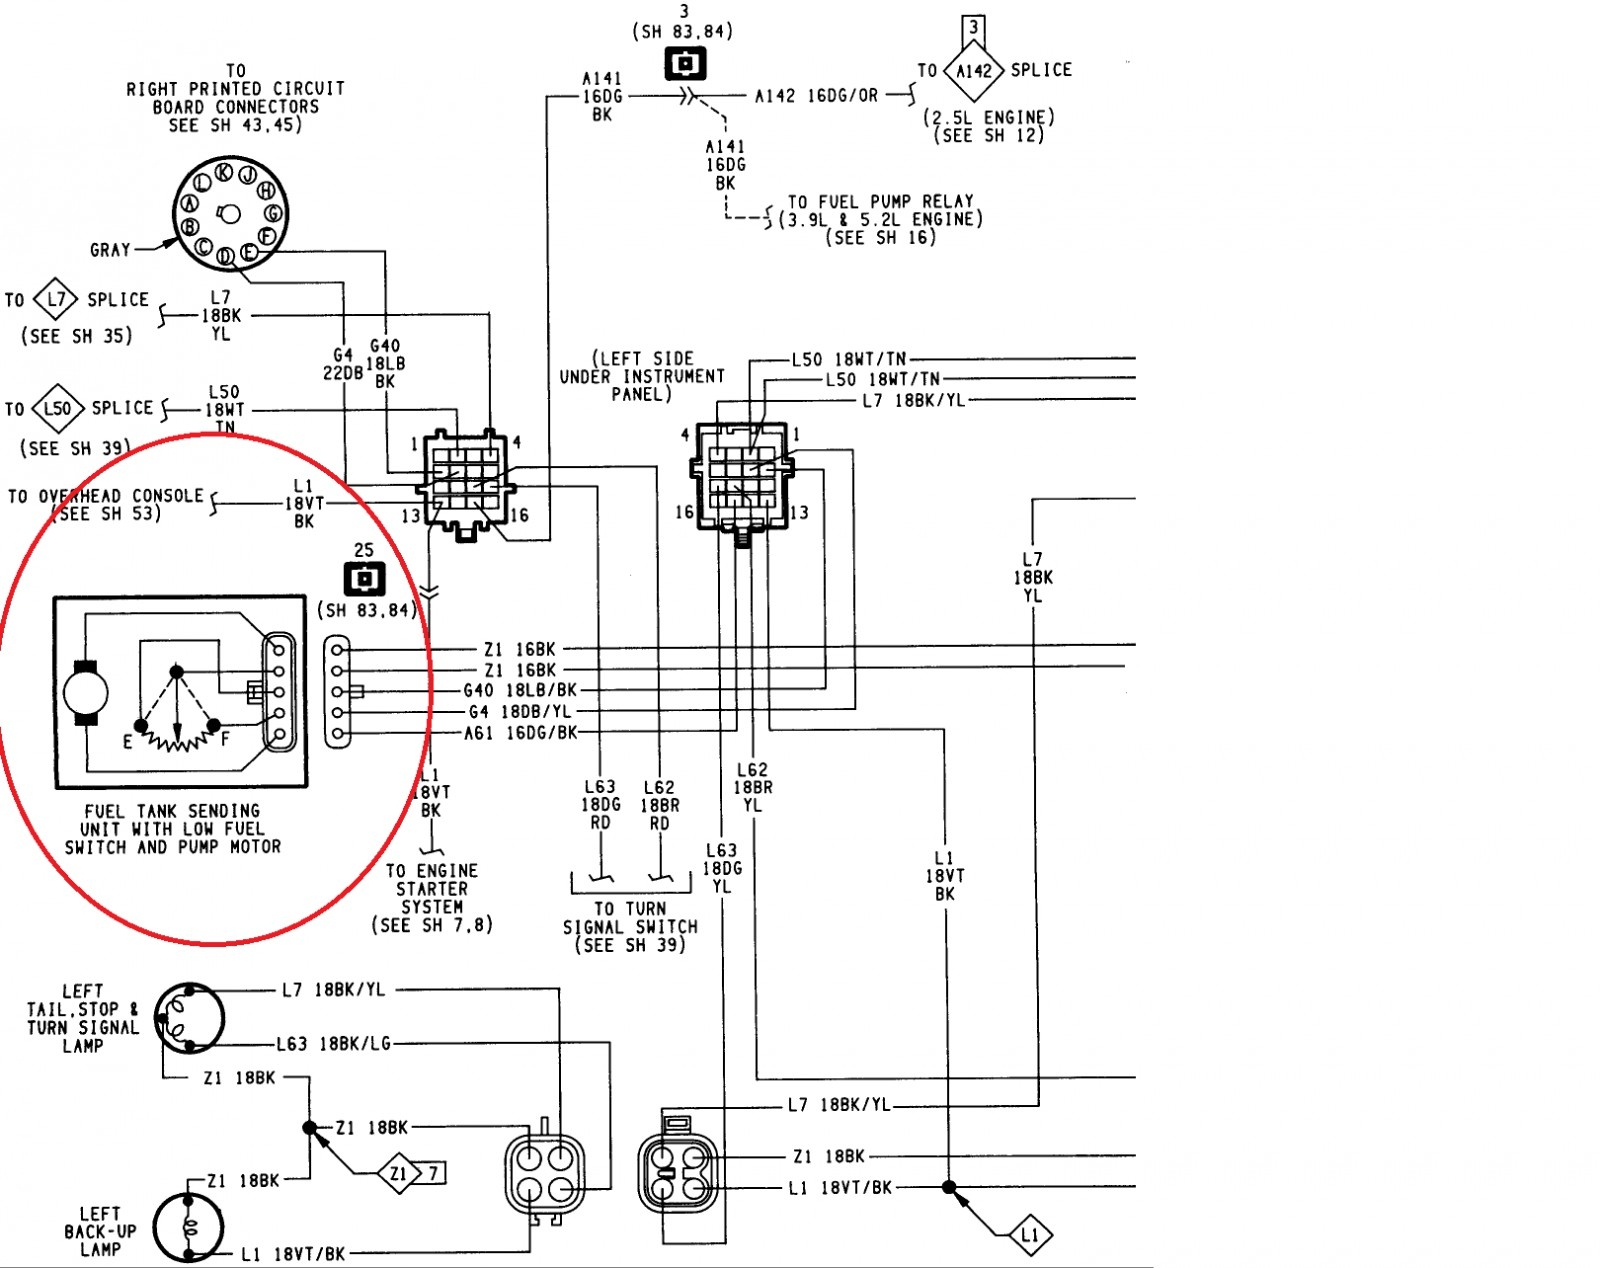 yamaha outboard fuel tank wiring read all wiring diagram 1978 Mercruiser Wiring-Diagram